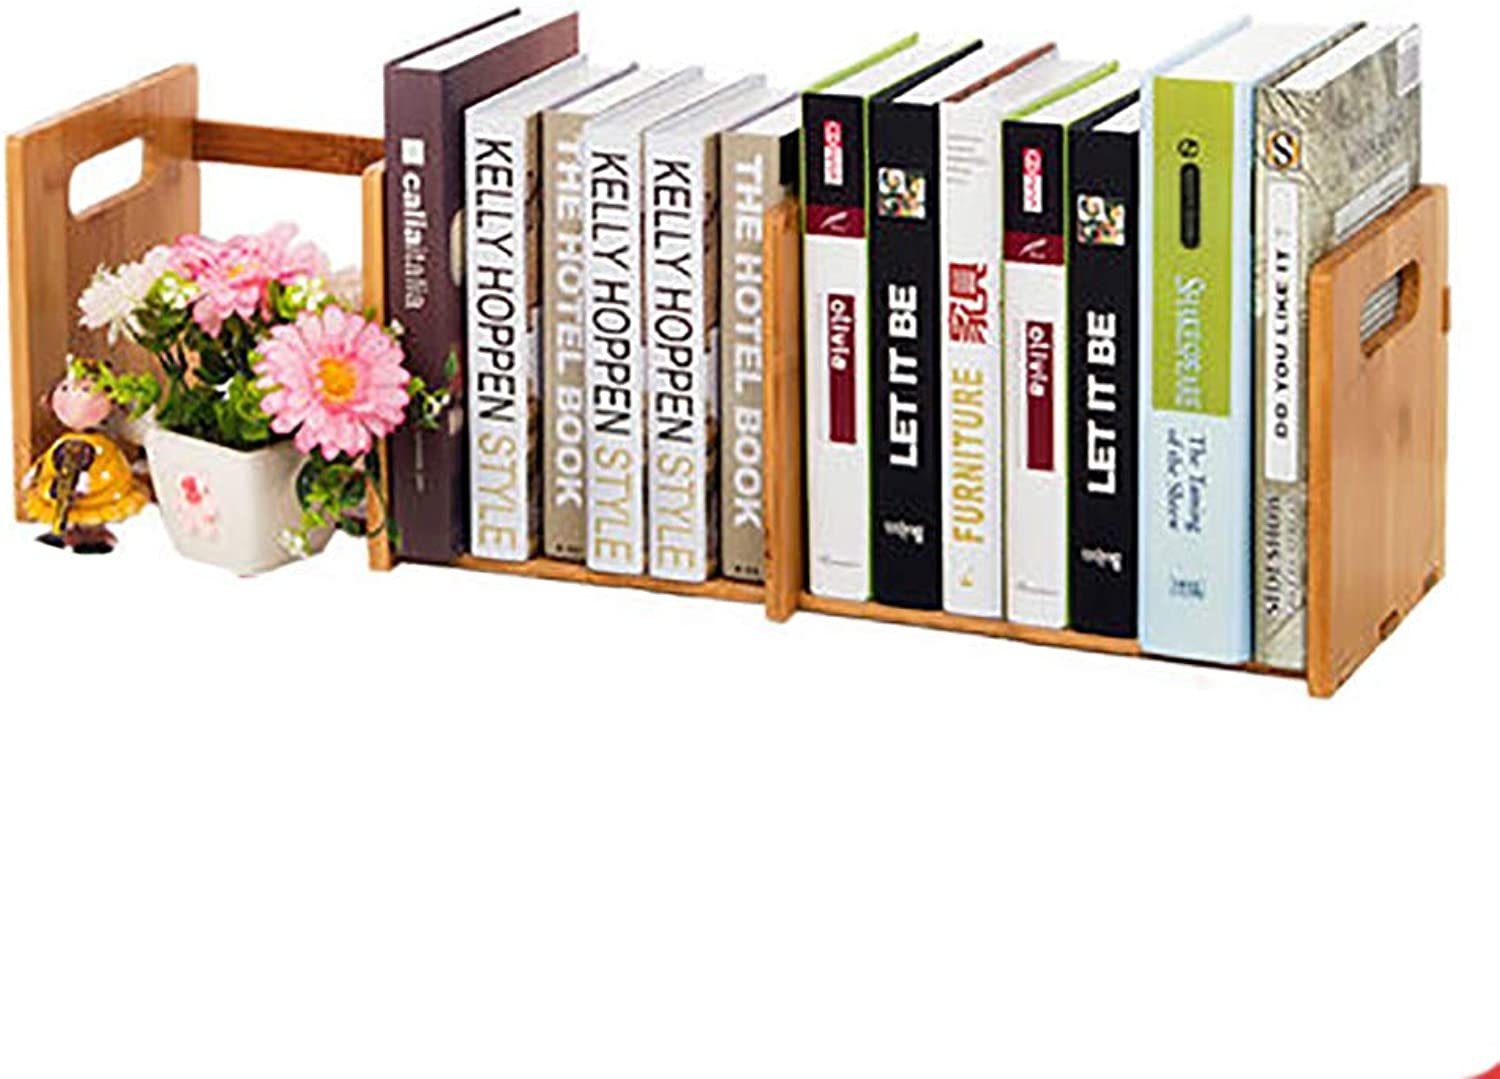 Adjustable Bookcase,Space Saving Small and Refined Bookshelf Desktop Storage Organizer Shelves Simple File cabinets-A4 51  21  19cm(20  8  7in)